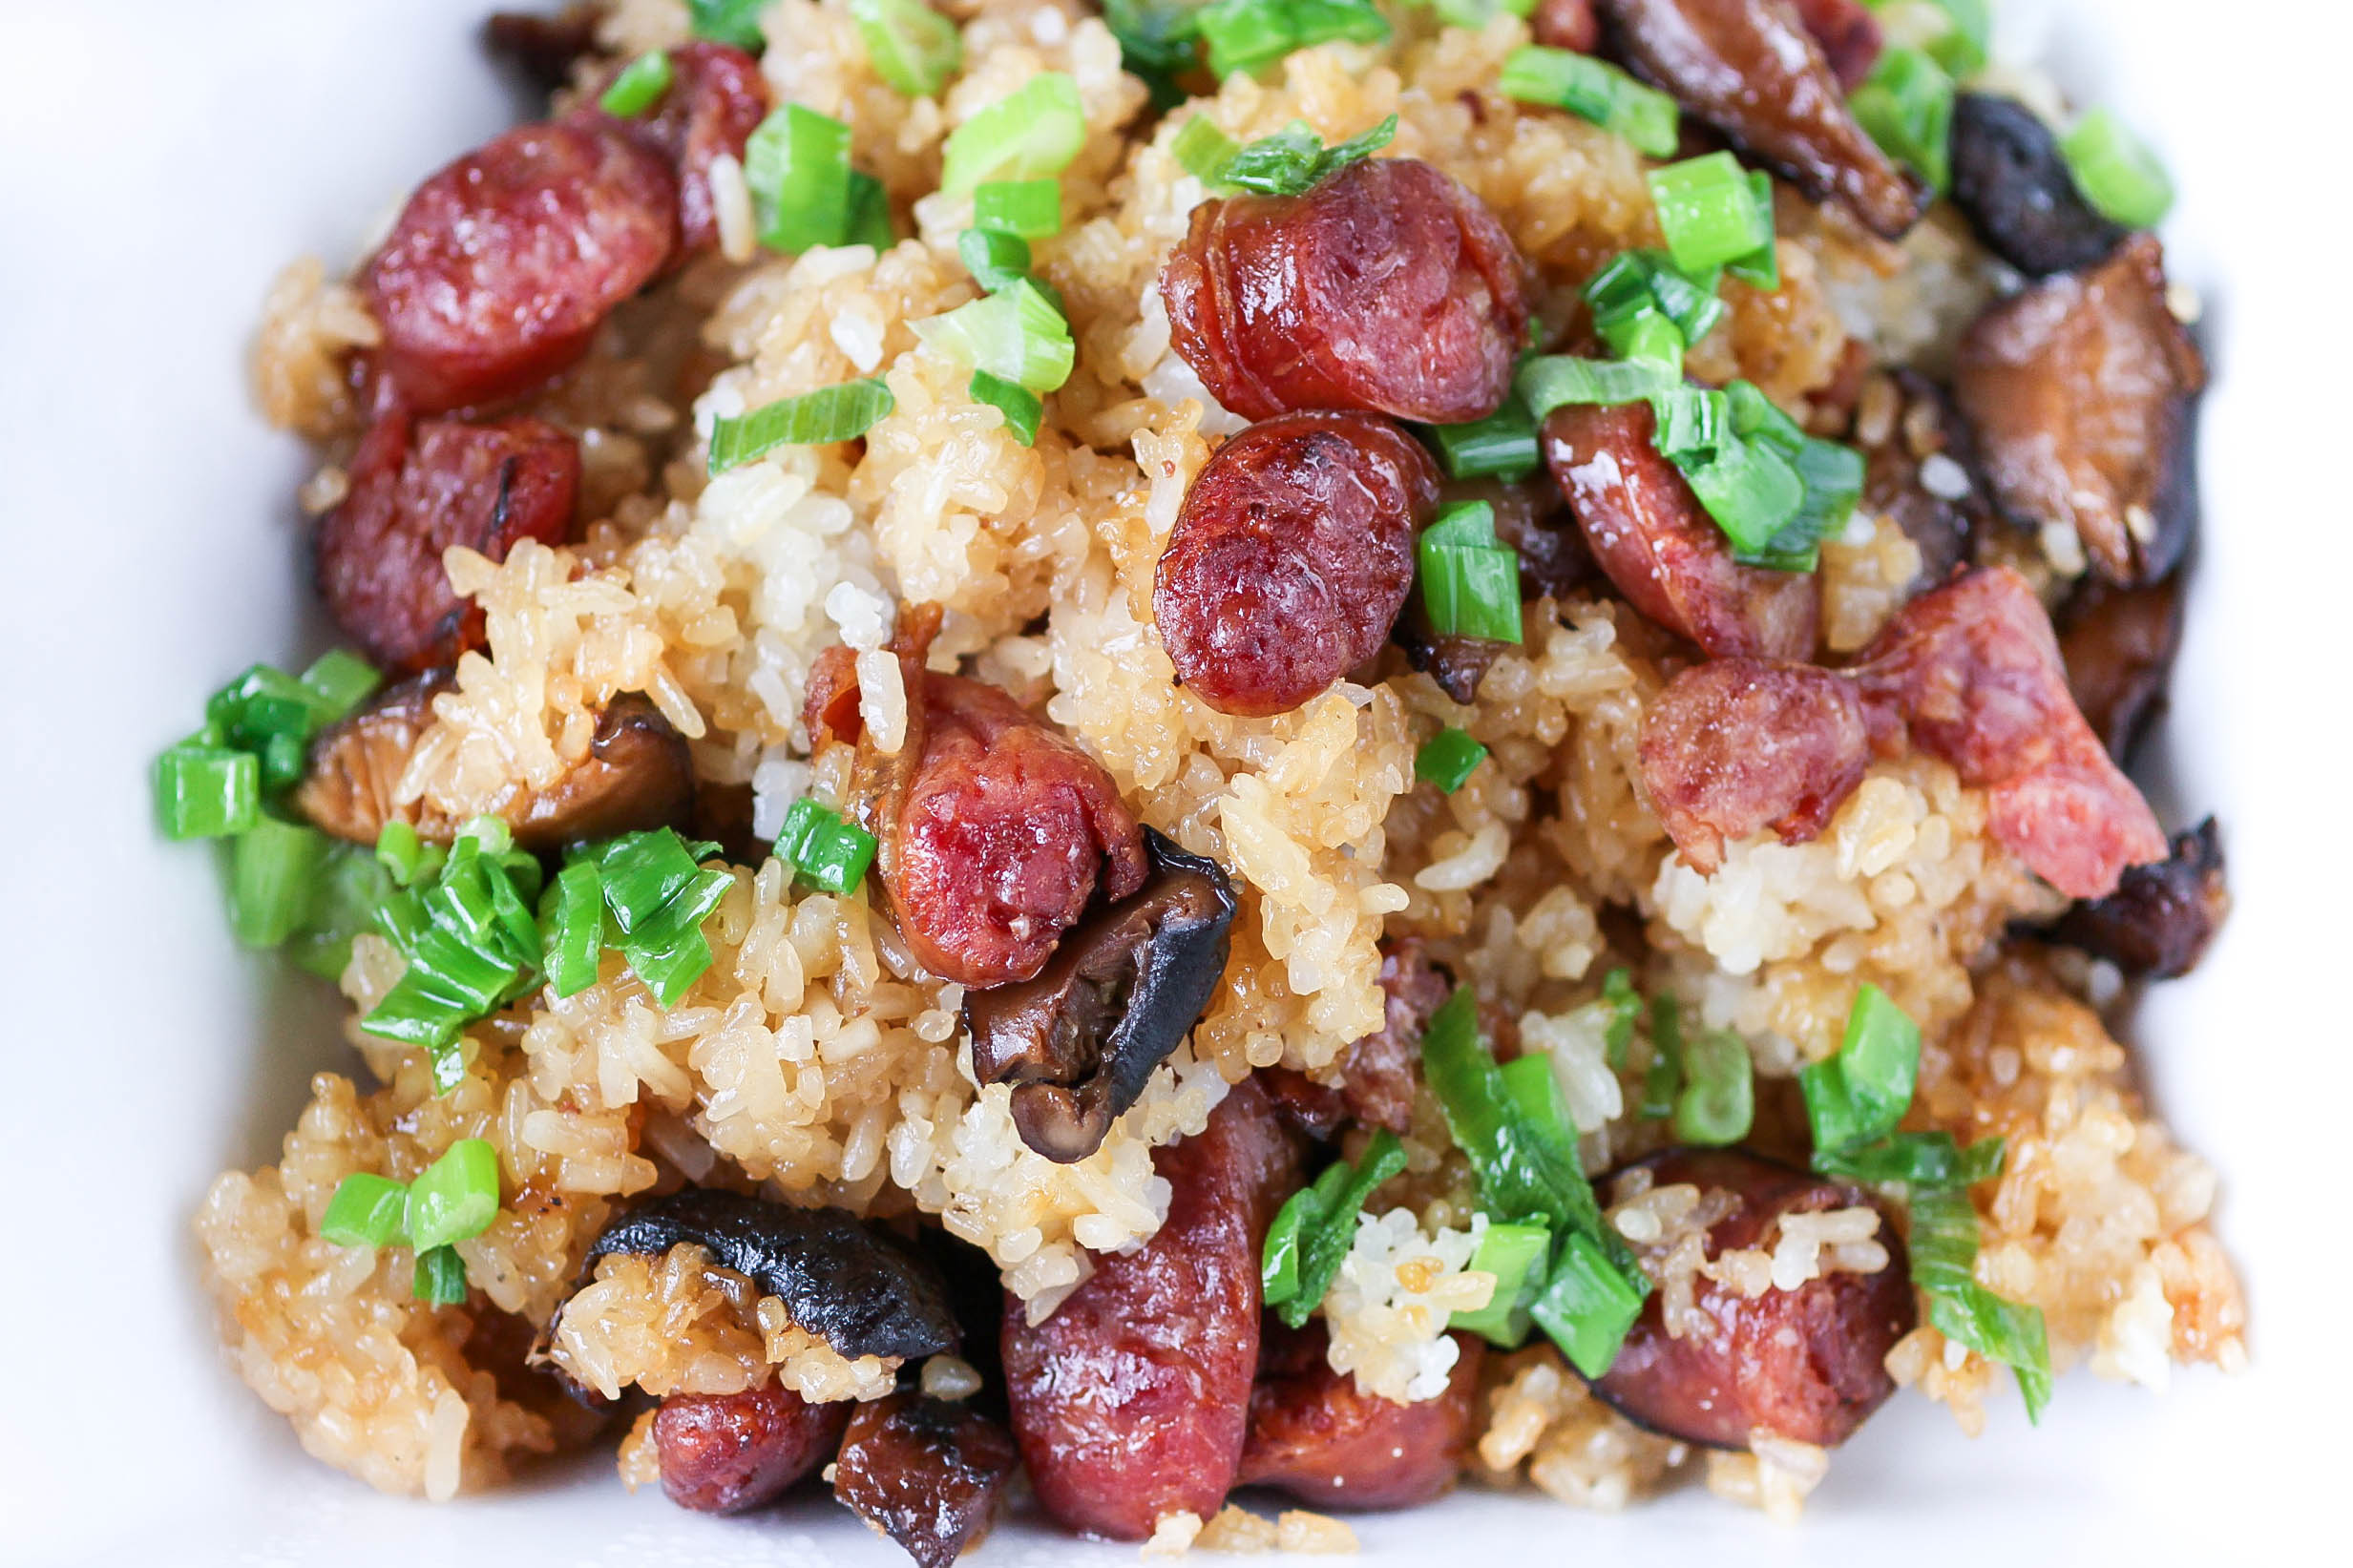 Sticky rice with Chinese sausage, Shitake mushrooms and dried shrimp (Xoi Man)